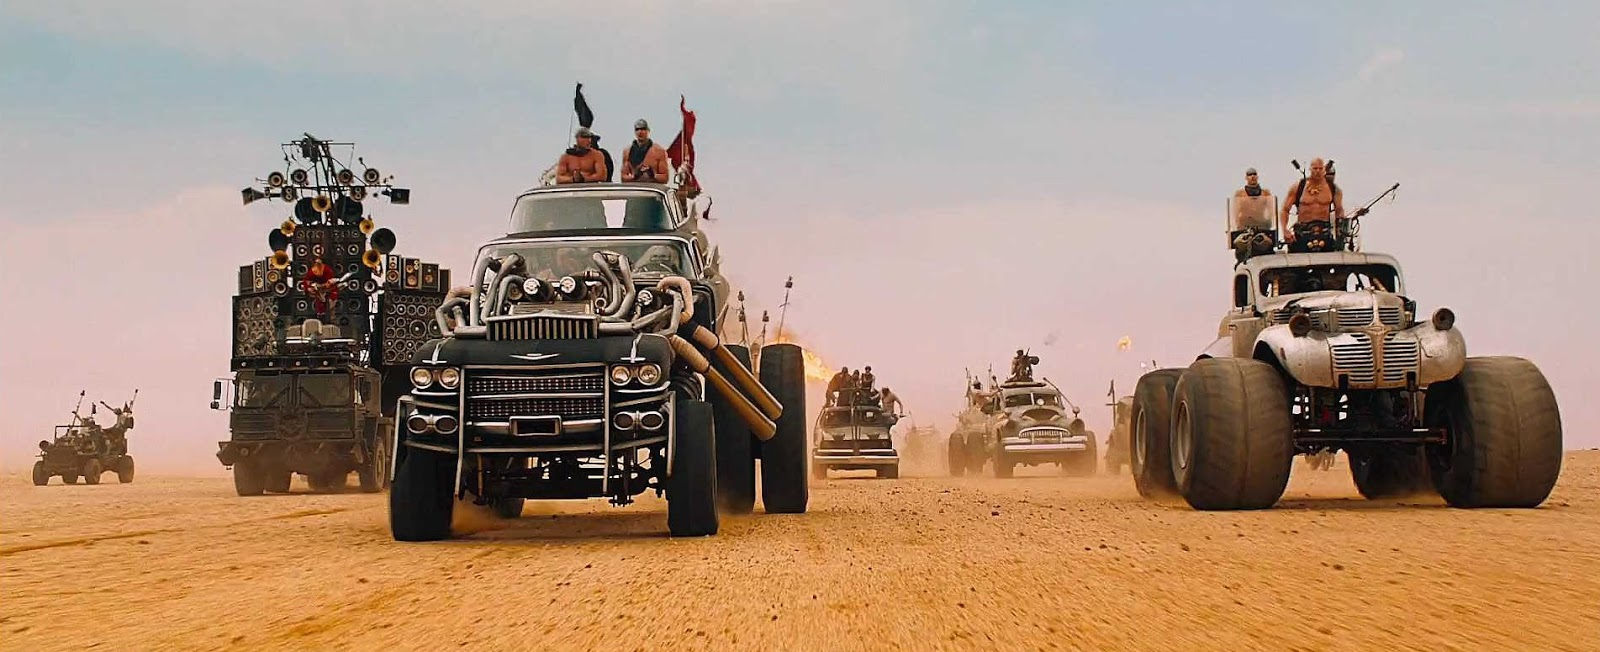 Hubbs Movie Reviews: Mad Max: Fury Road (AU/US, 2015)